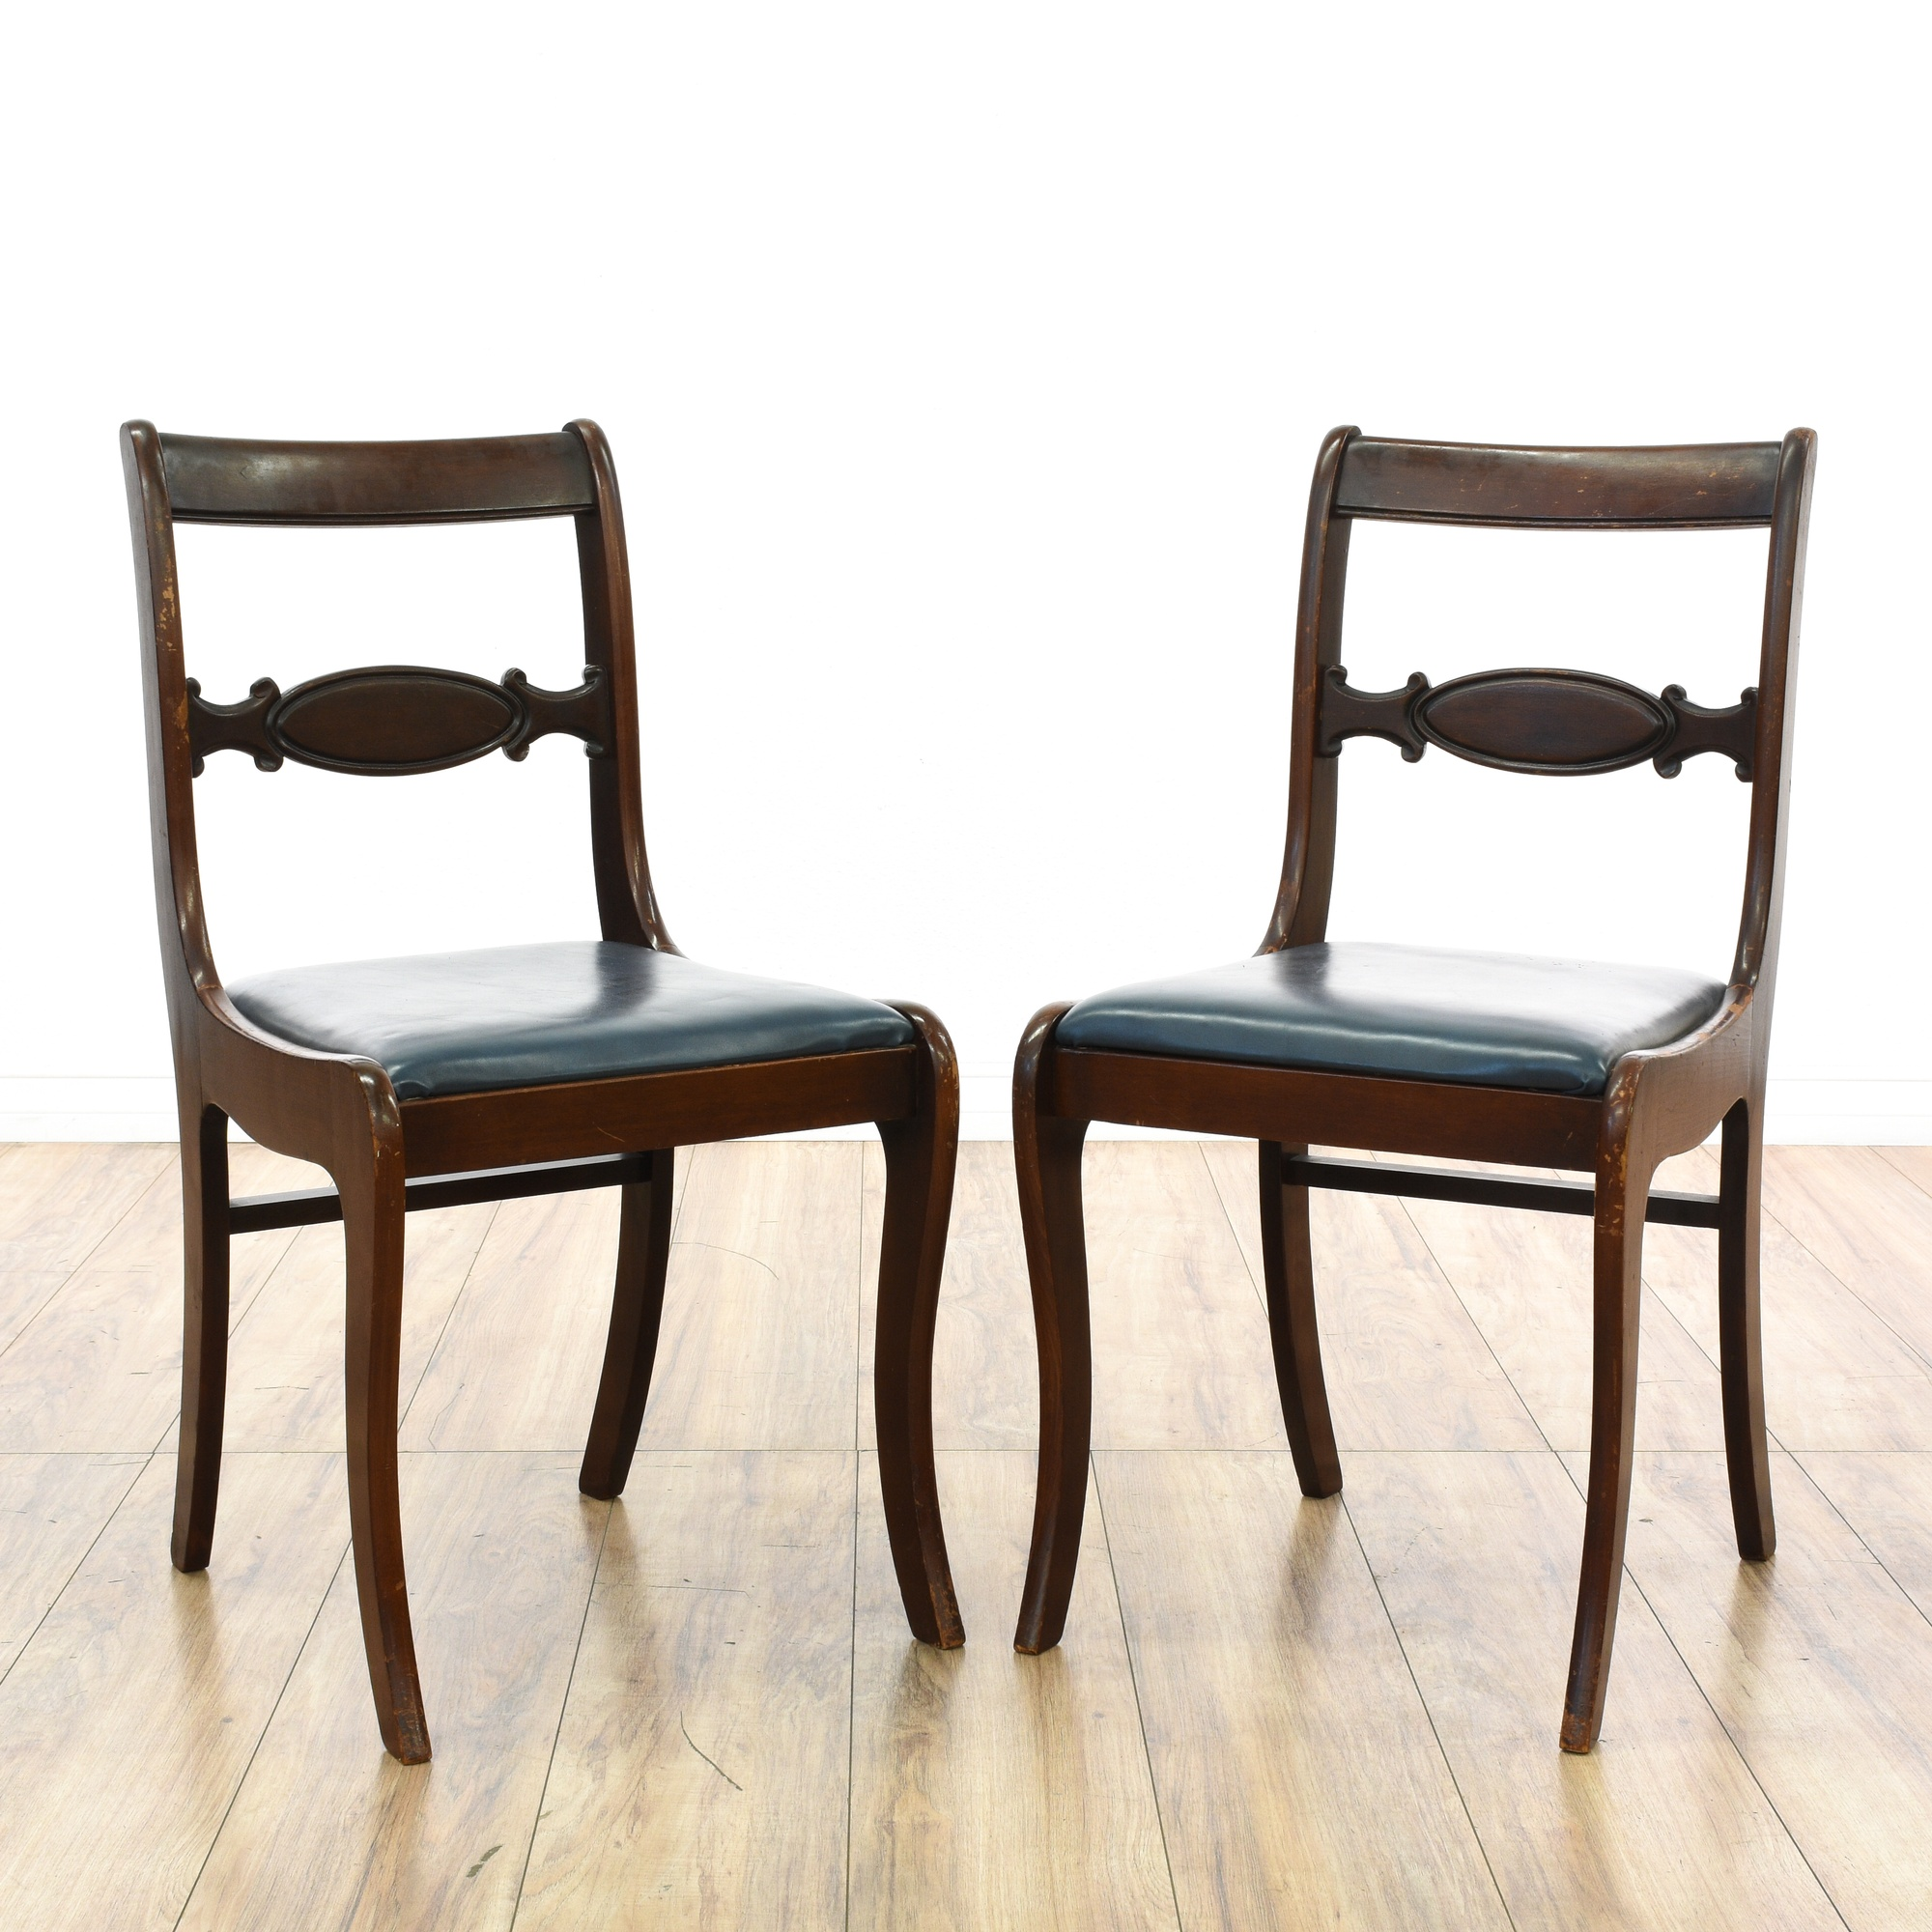 Pair of vinyl seat dining chairs